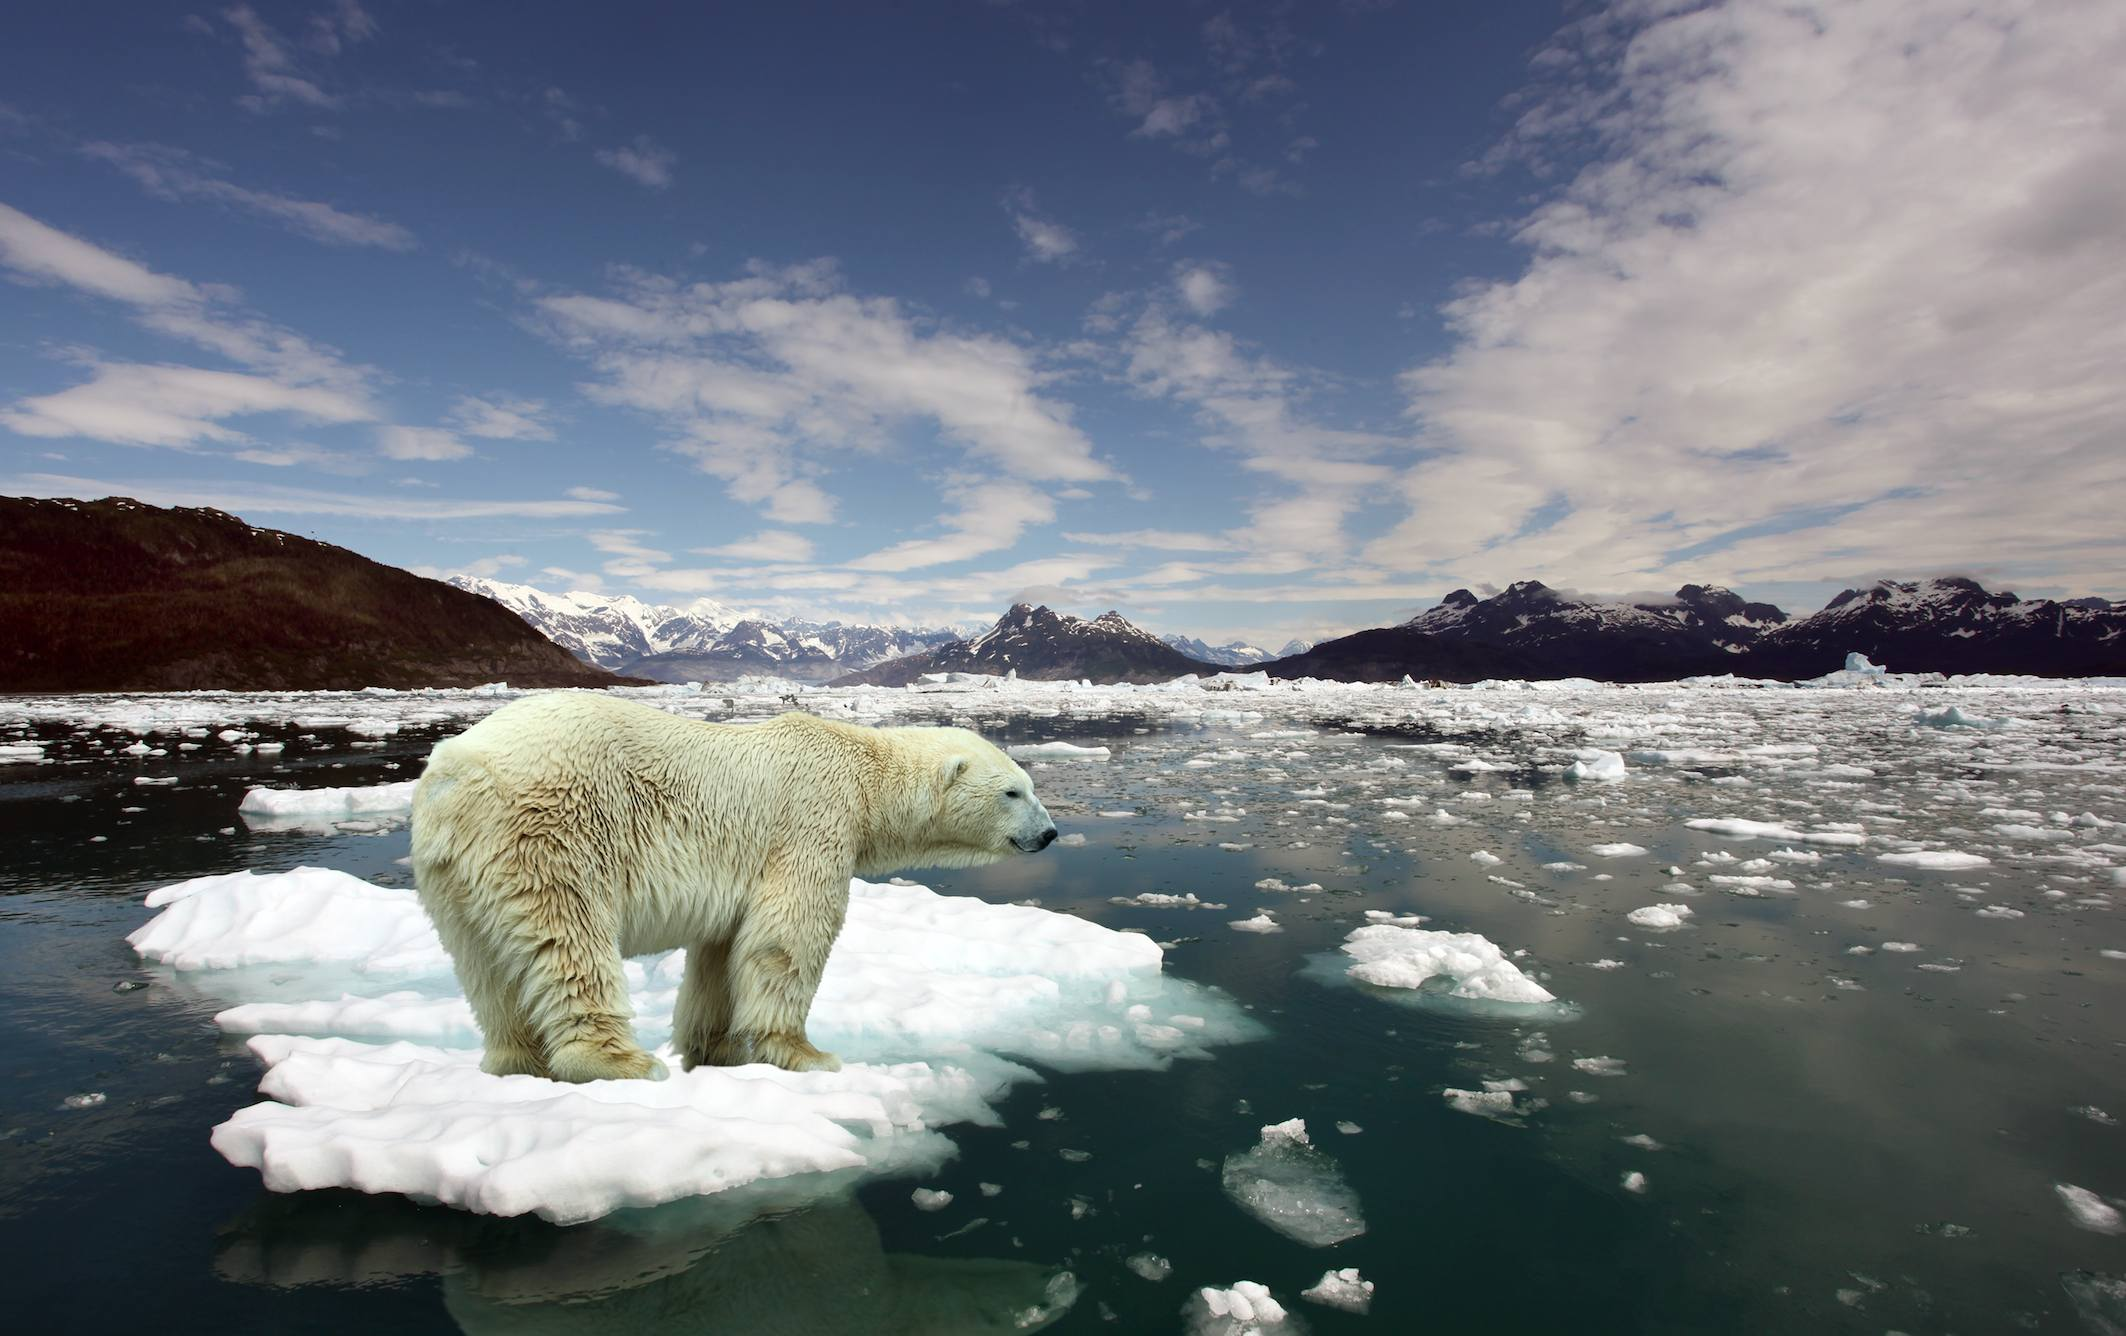 Polar bear on a melting ice cap